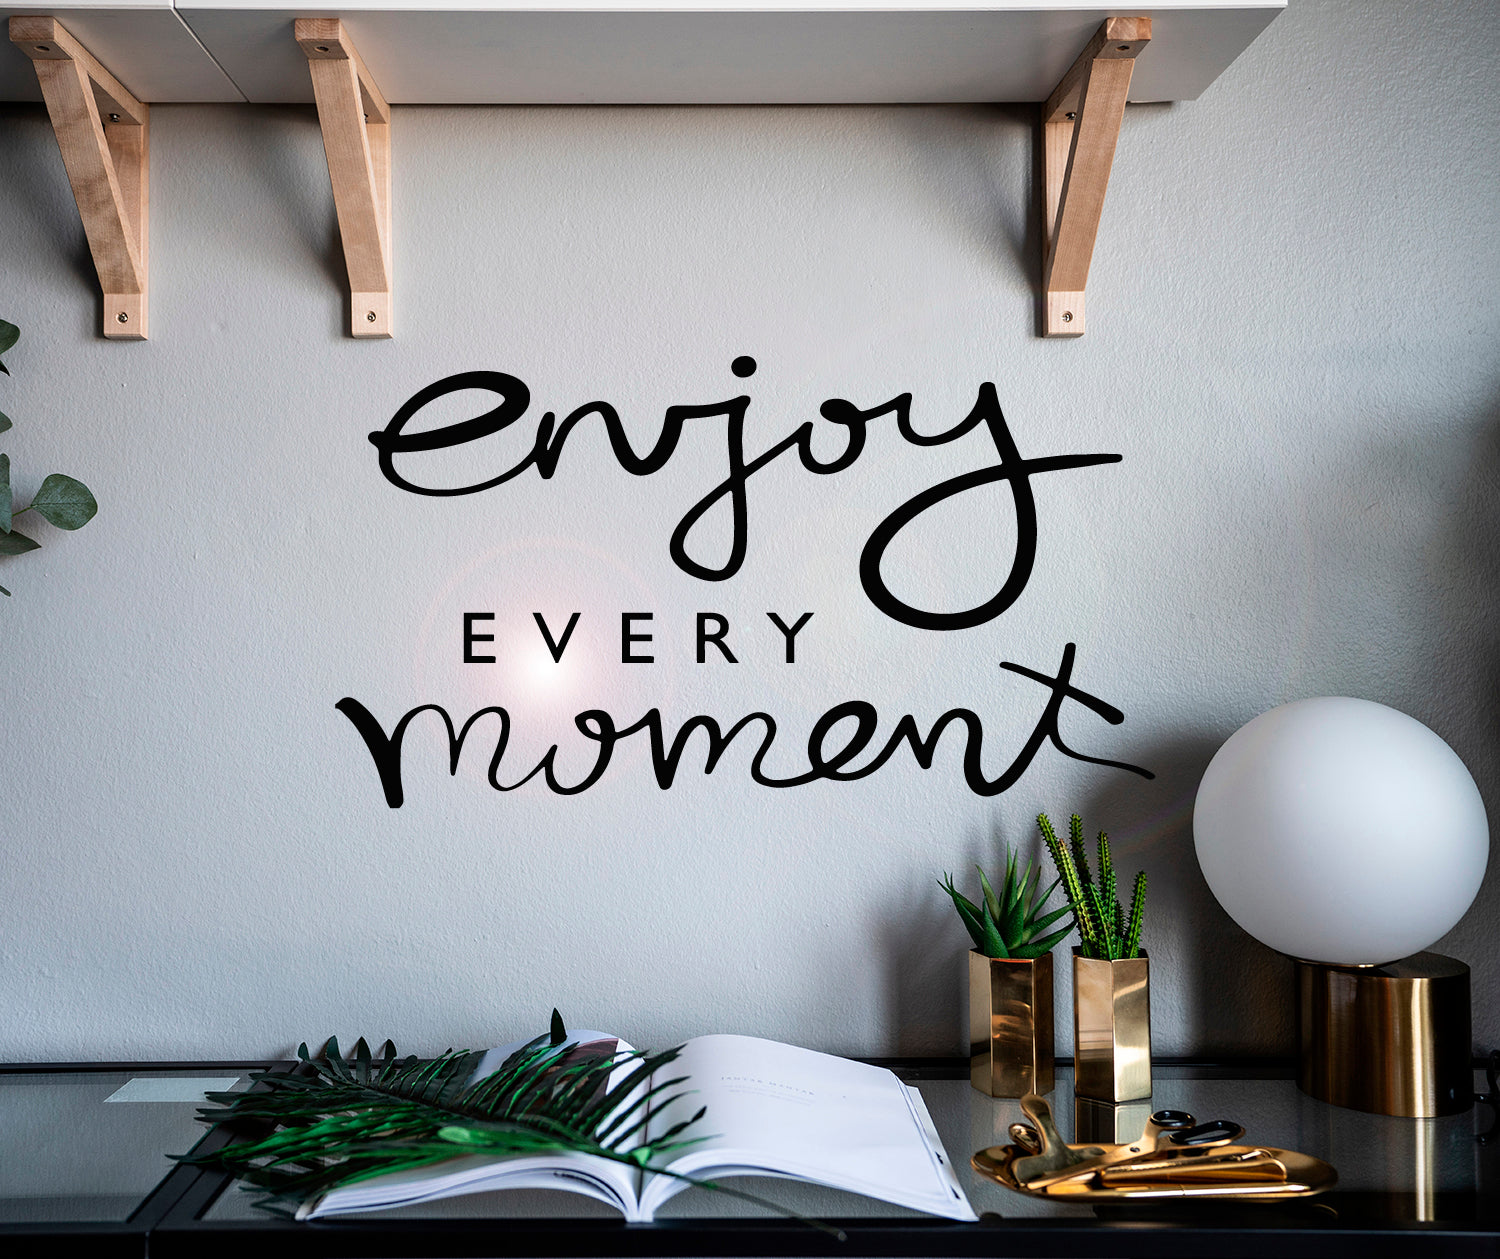 Vinyl Wall Decal Inspiring Quote Enjoy Every Moment Stickers Mural 22 Wallstickers4you